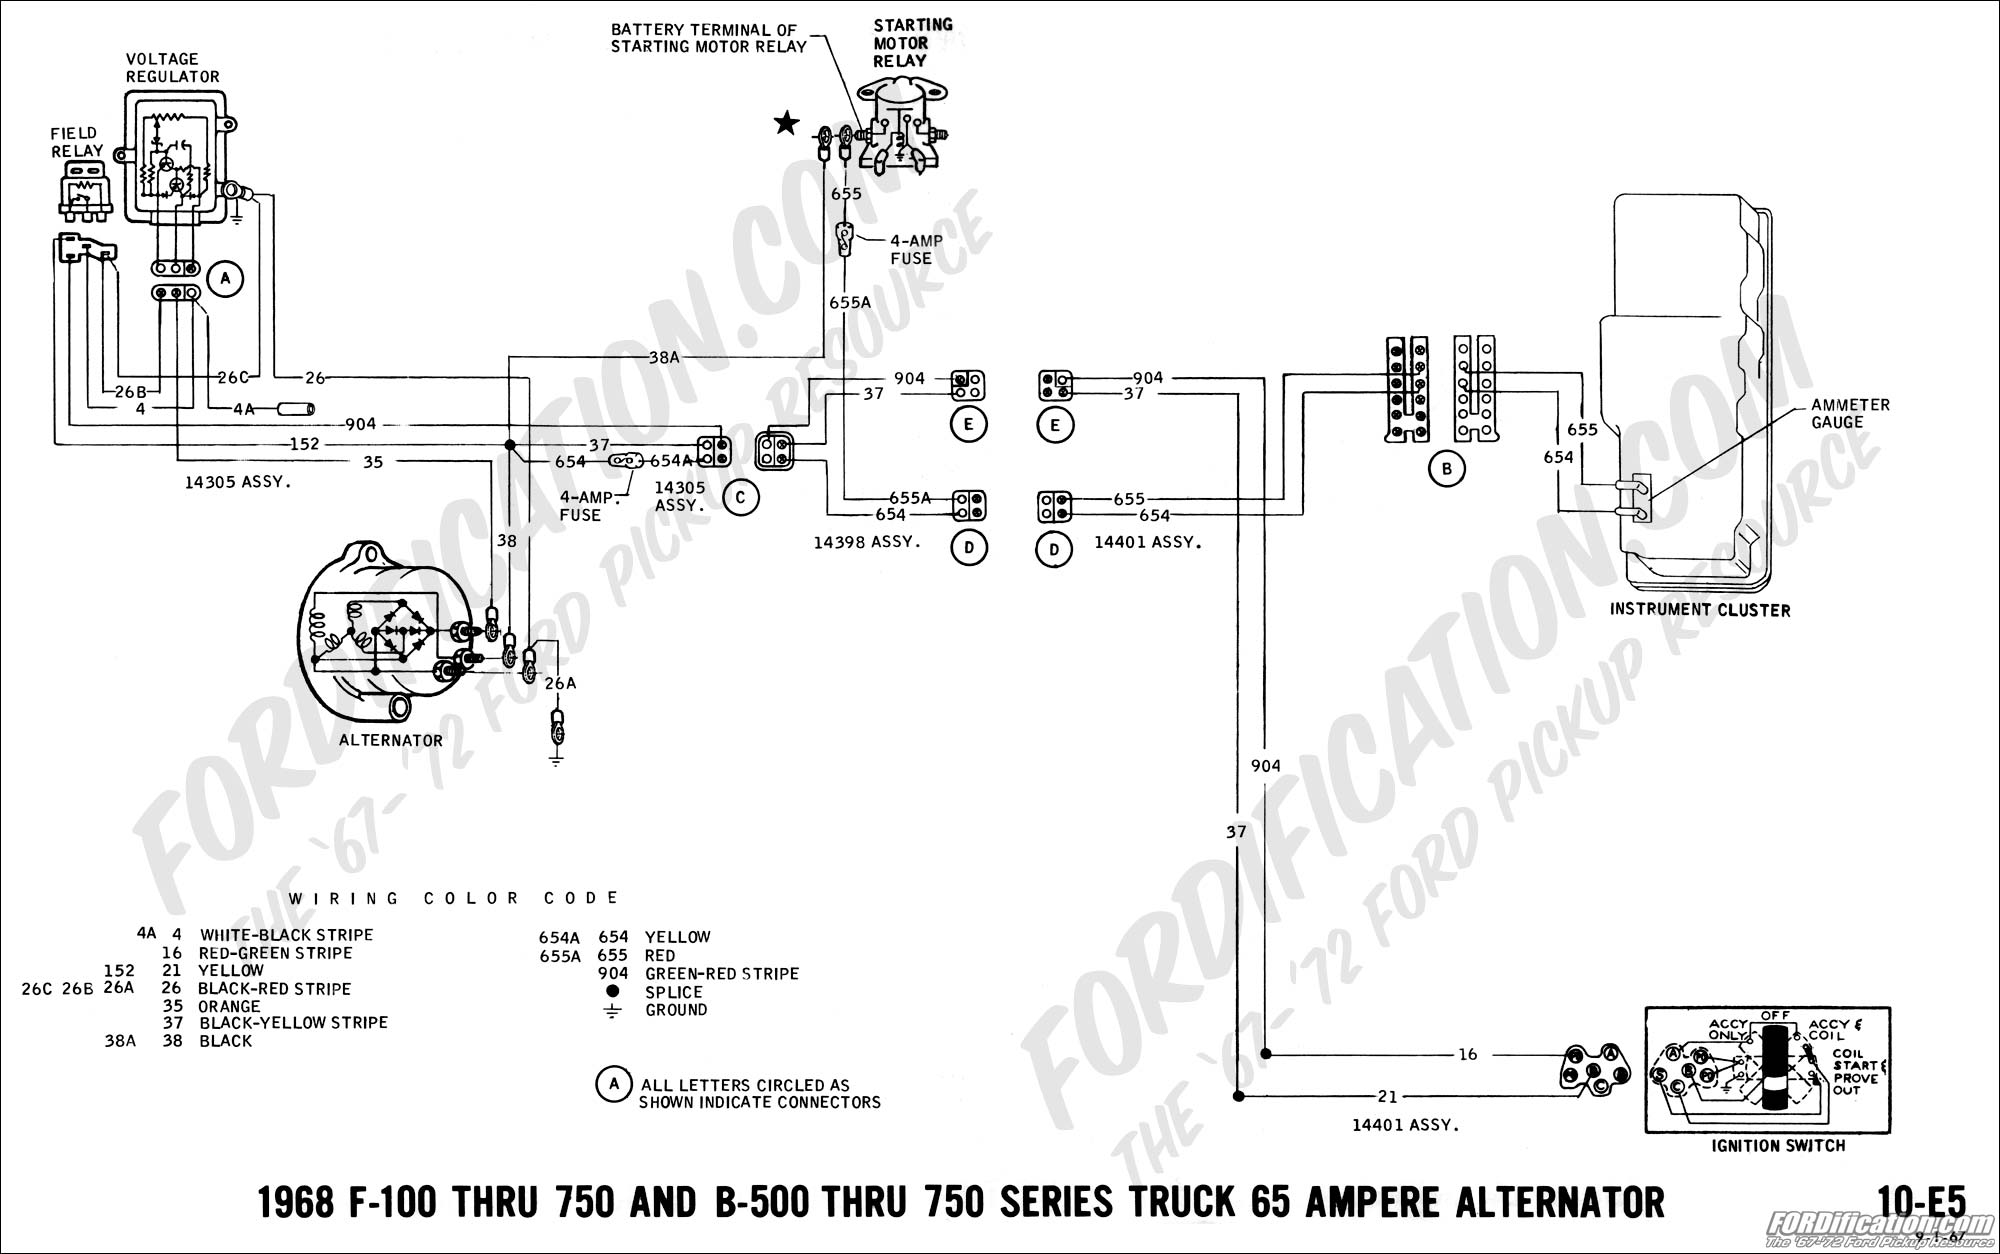 68 07 ford truck technical drawings and schematics section h wiring 1985 ford truck wiring diagram at bayanpartner.co